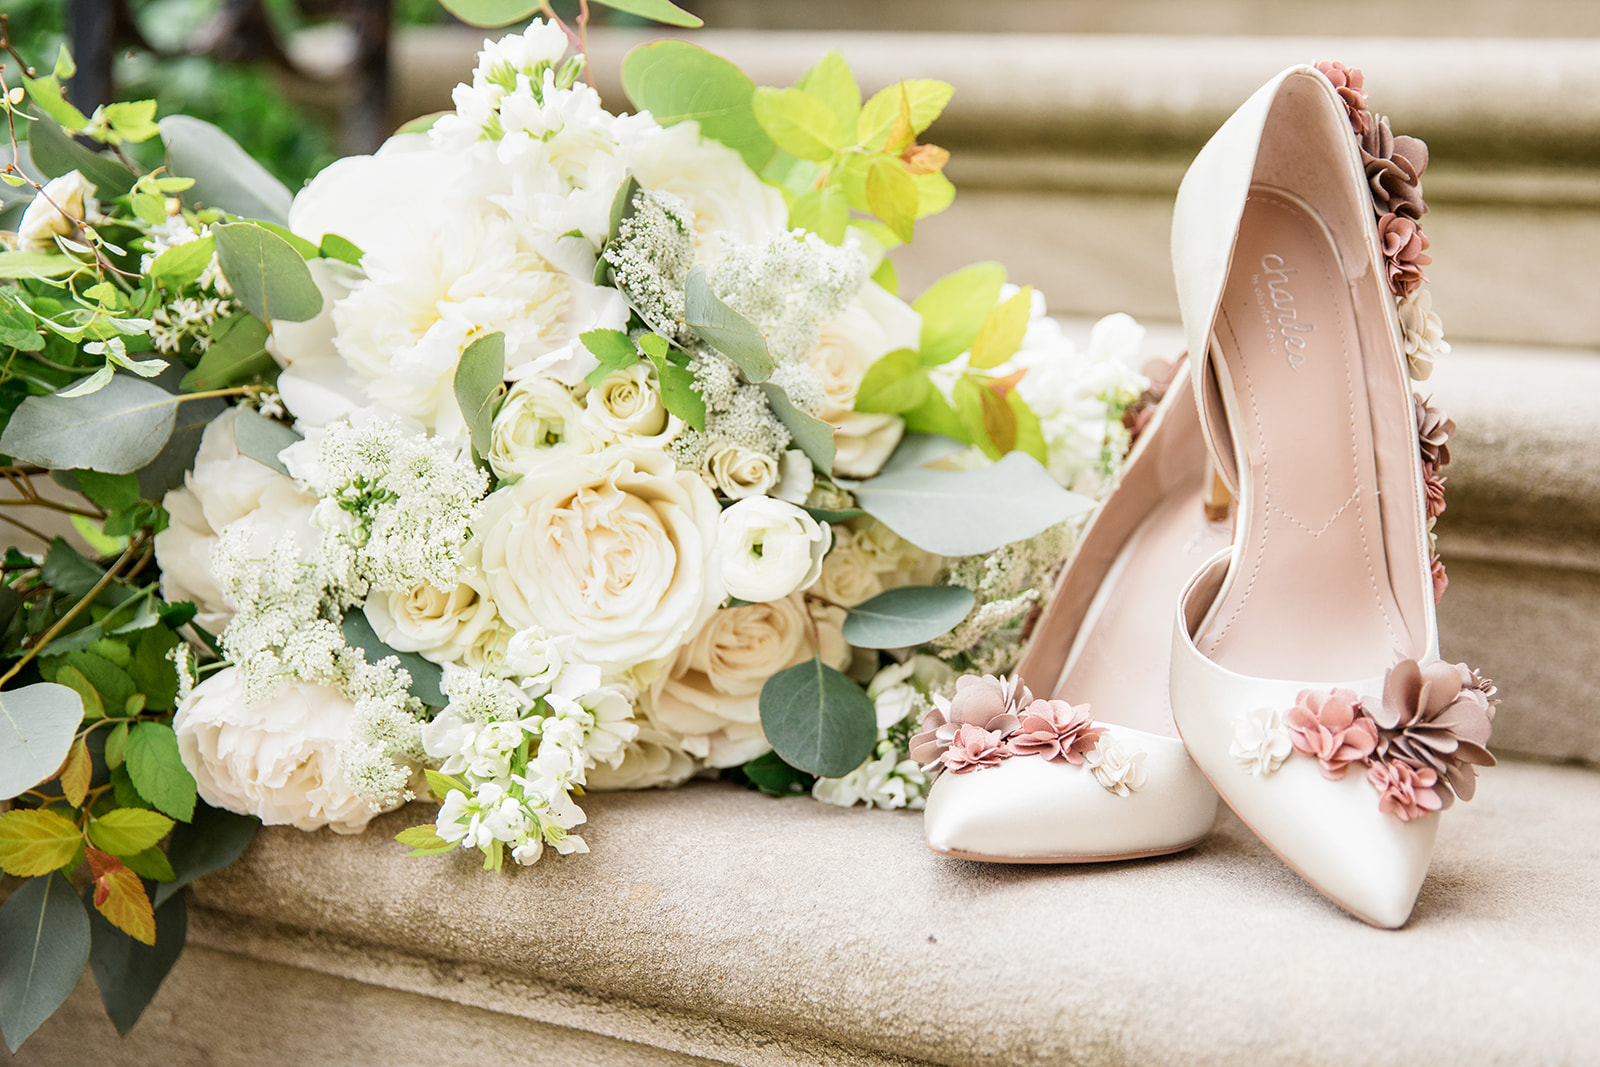 Bridal Bouquet & Shoes